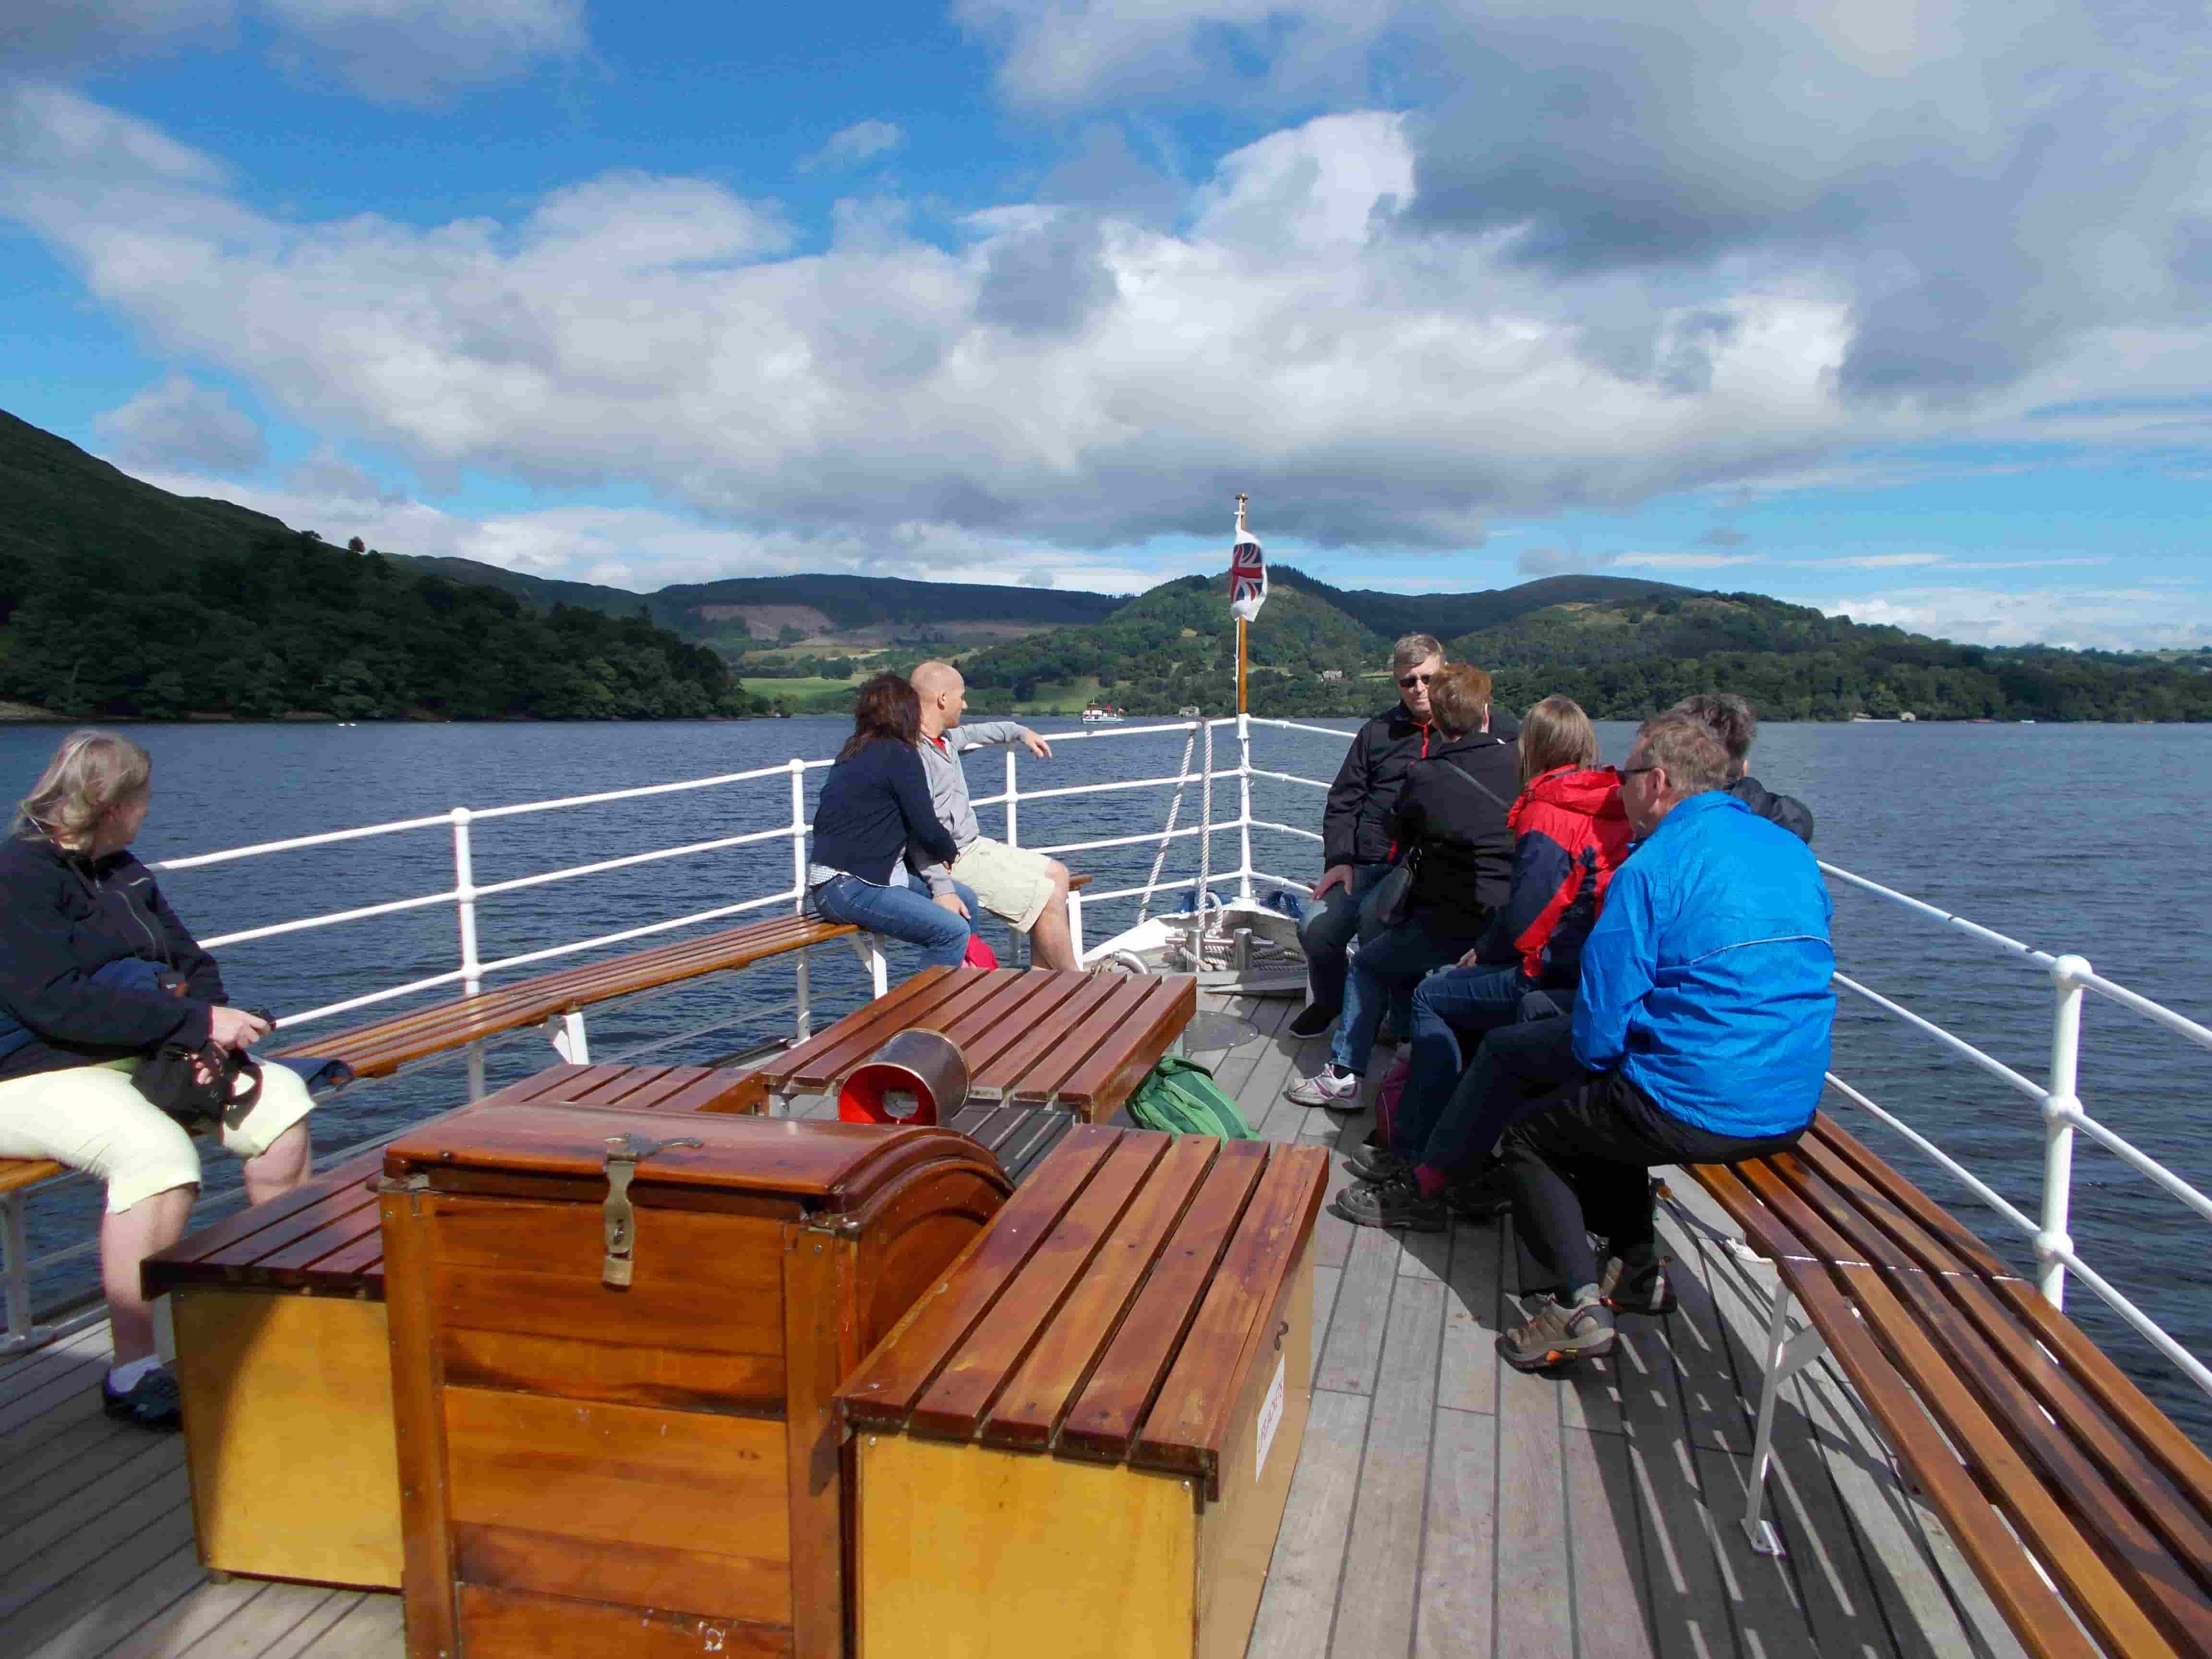 Cruising-on-Ullswater-min.jpg